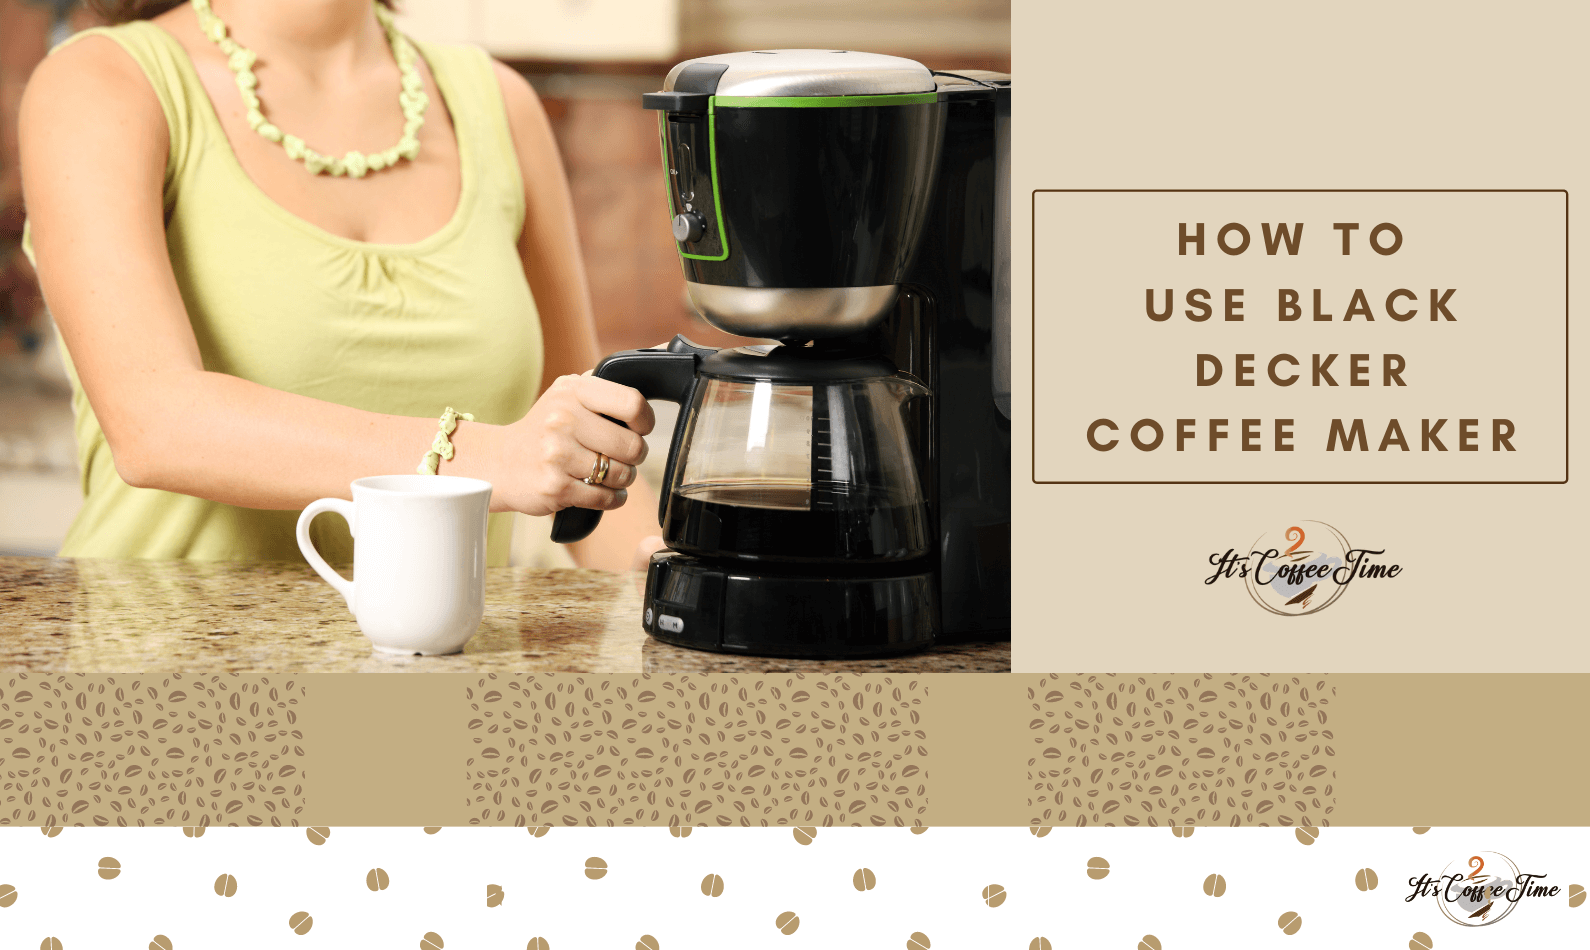 How to use Black Decker Coffee Maker